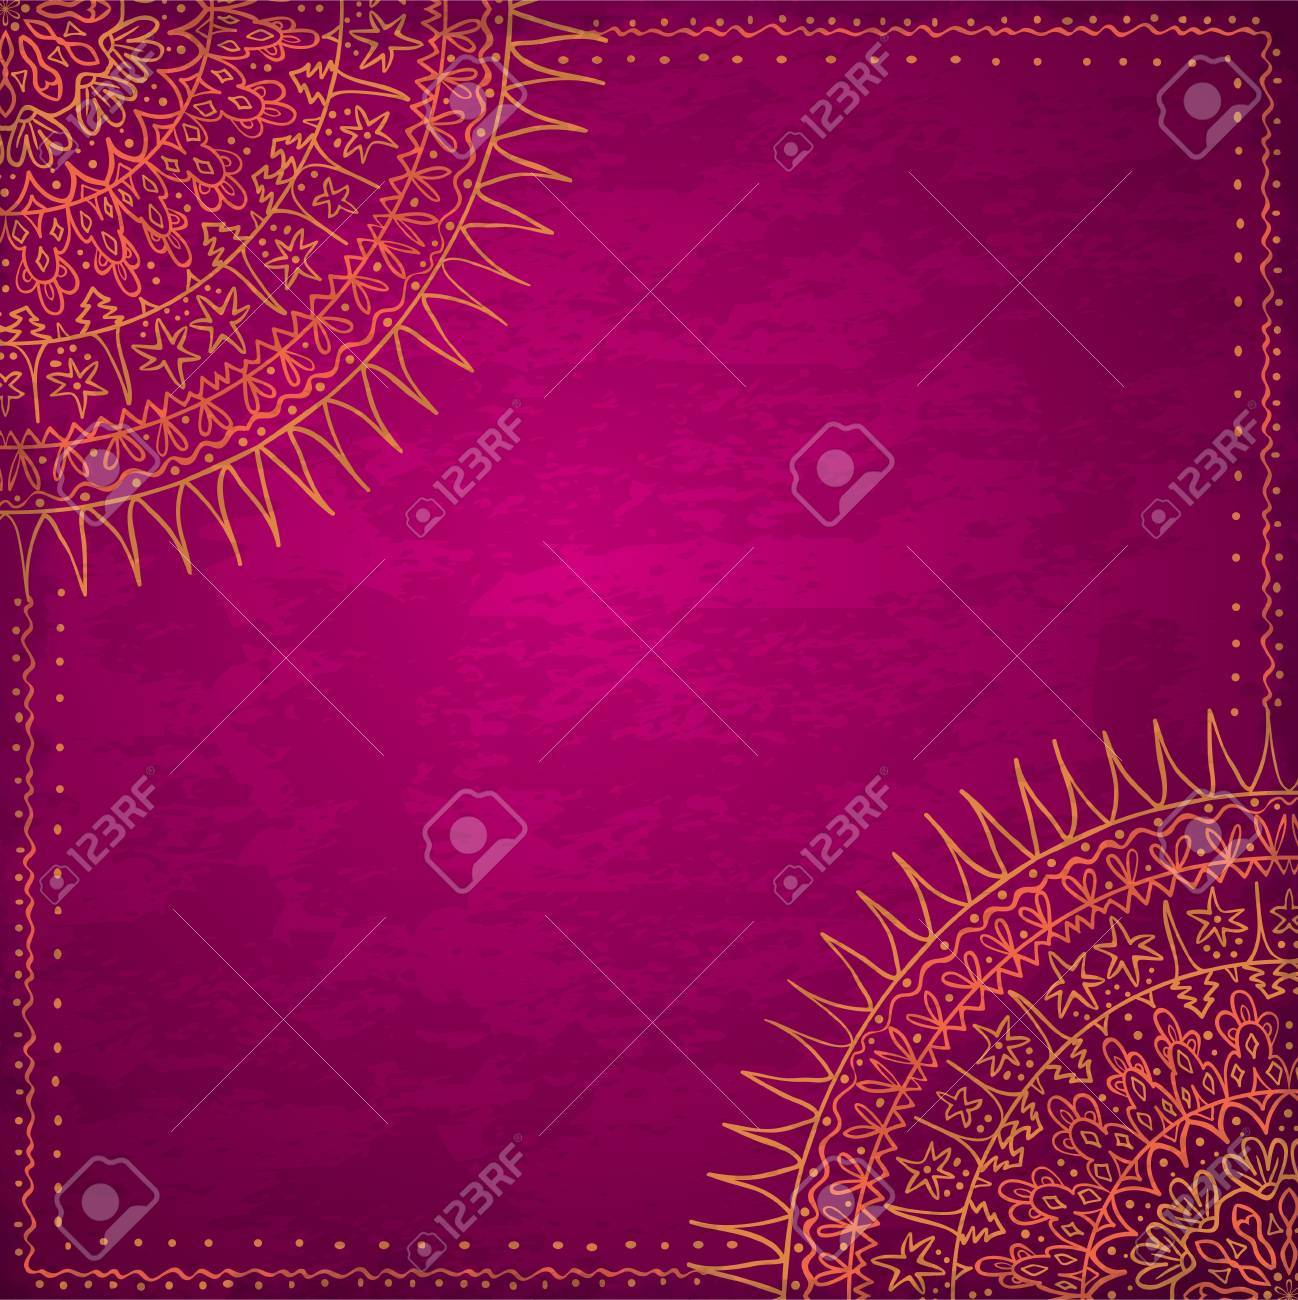 Ornamental round lace pattern, circle background with many details, looks like crocheting handmade lace on grunge background, lacy arabesque designs  Vintage card template Stock Vector - 19959716